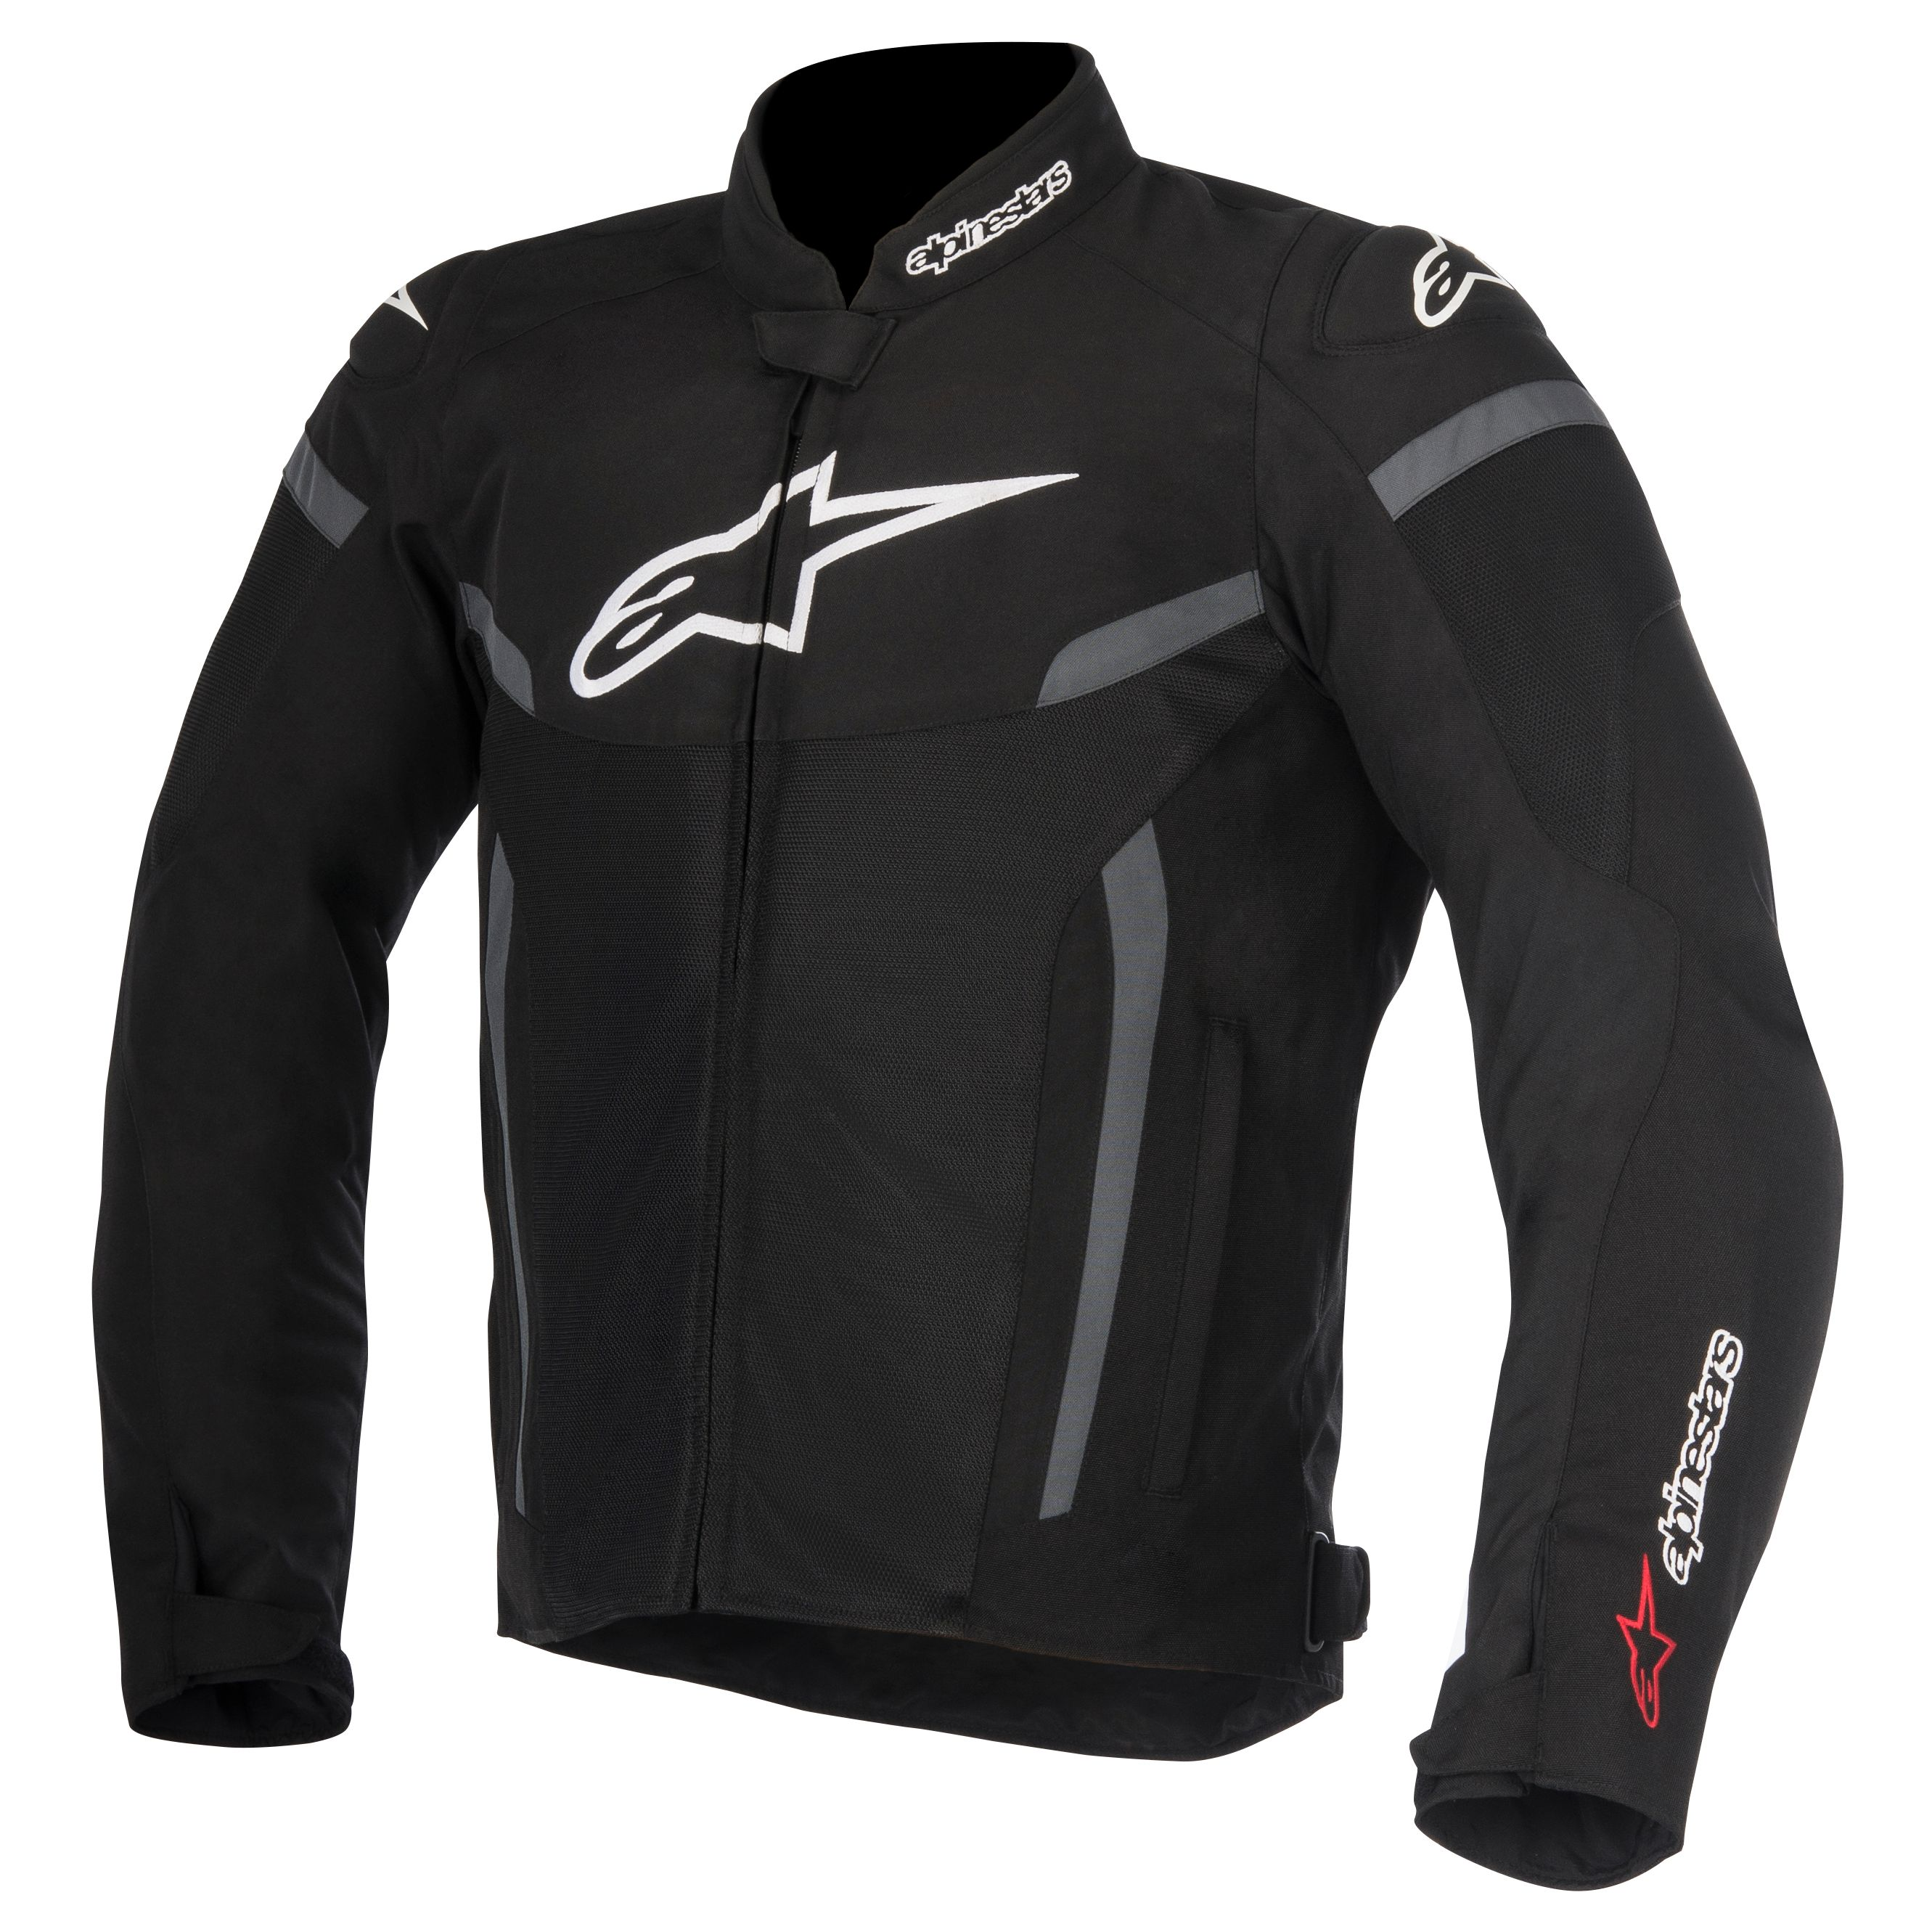 blouson alpinestars t gp plus r v2 air equipement du pilote access. Black Bedroom Furniture Sets. Home Design Ideas